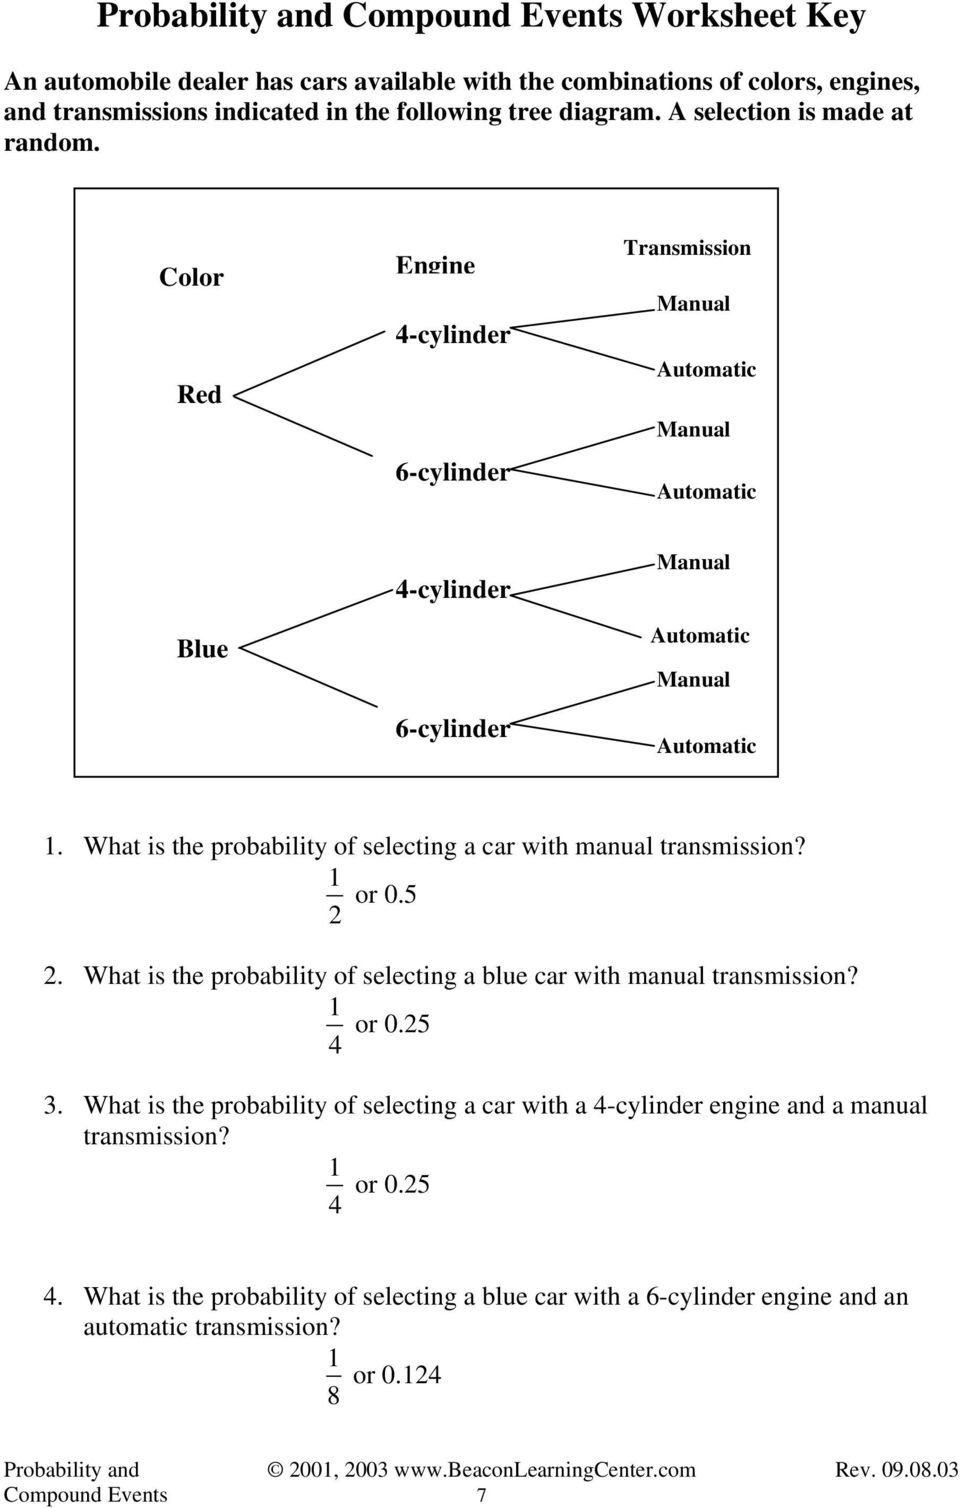 Probability And Compound Events Examples  Pdf With Regard To Probability Of Compound Events Worksheet Answers